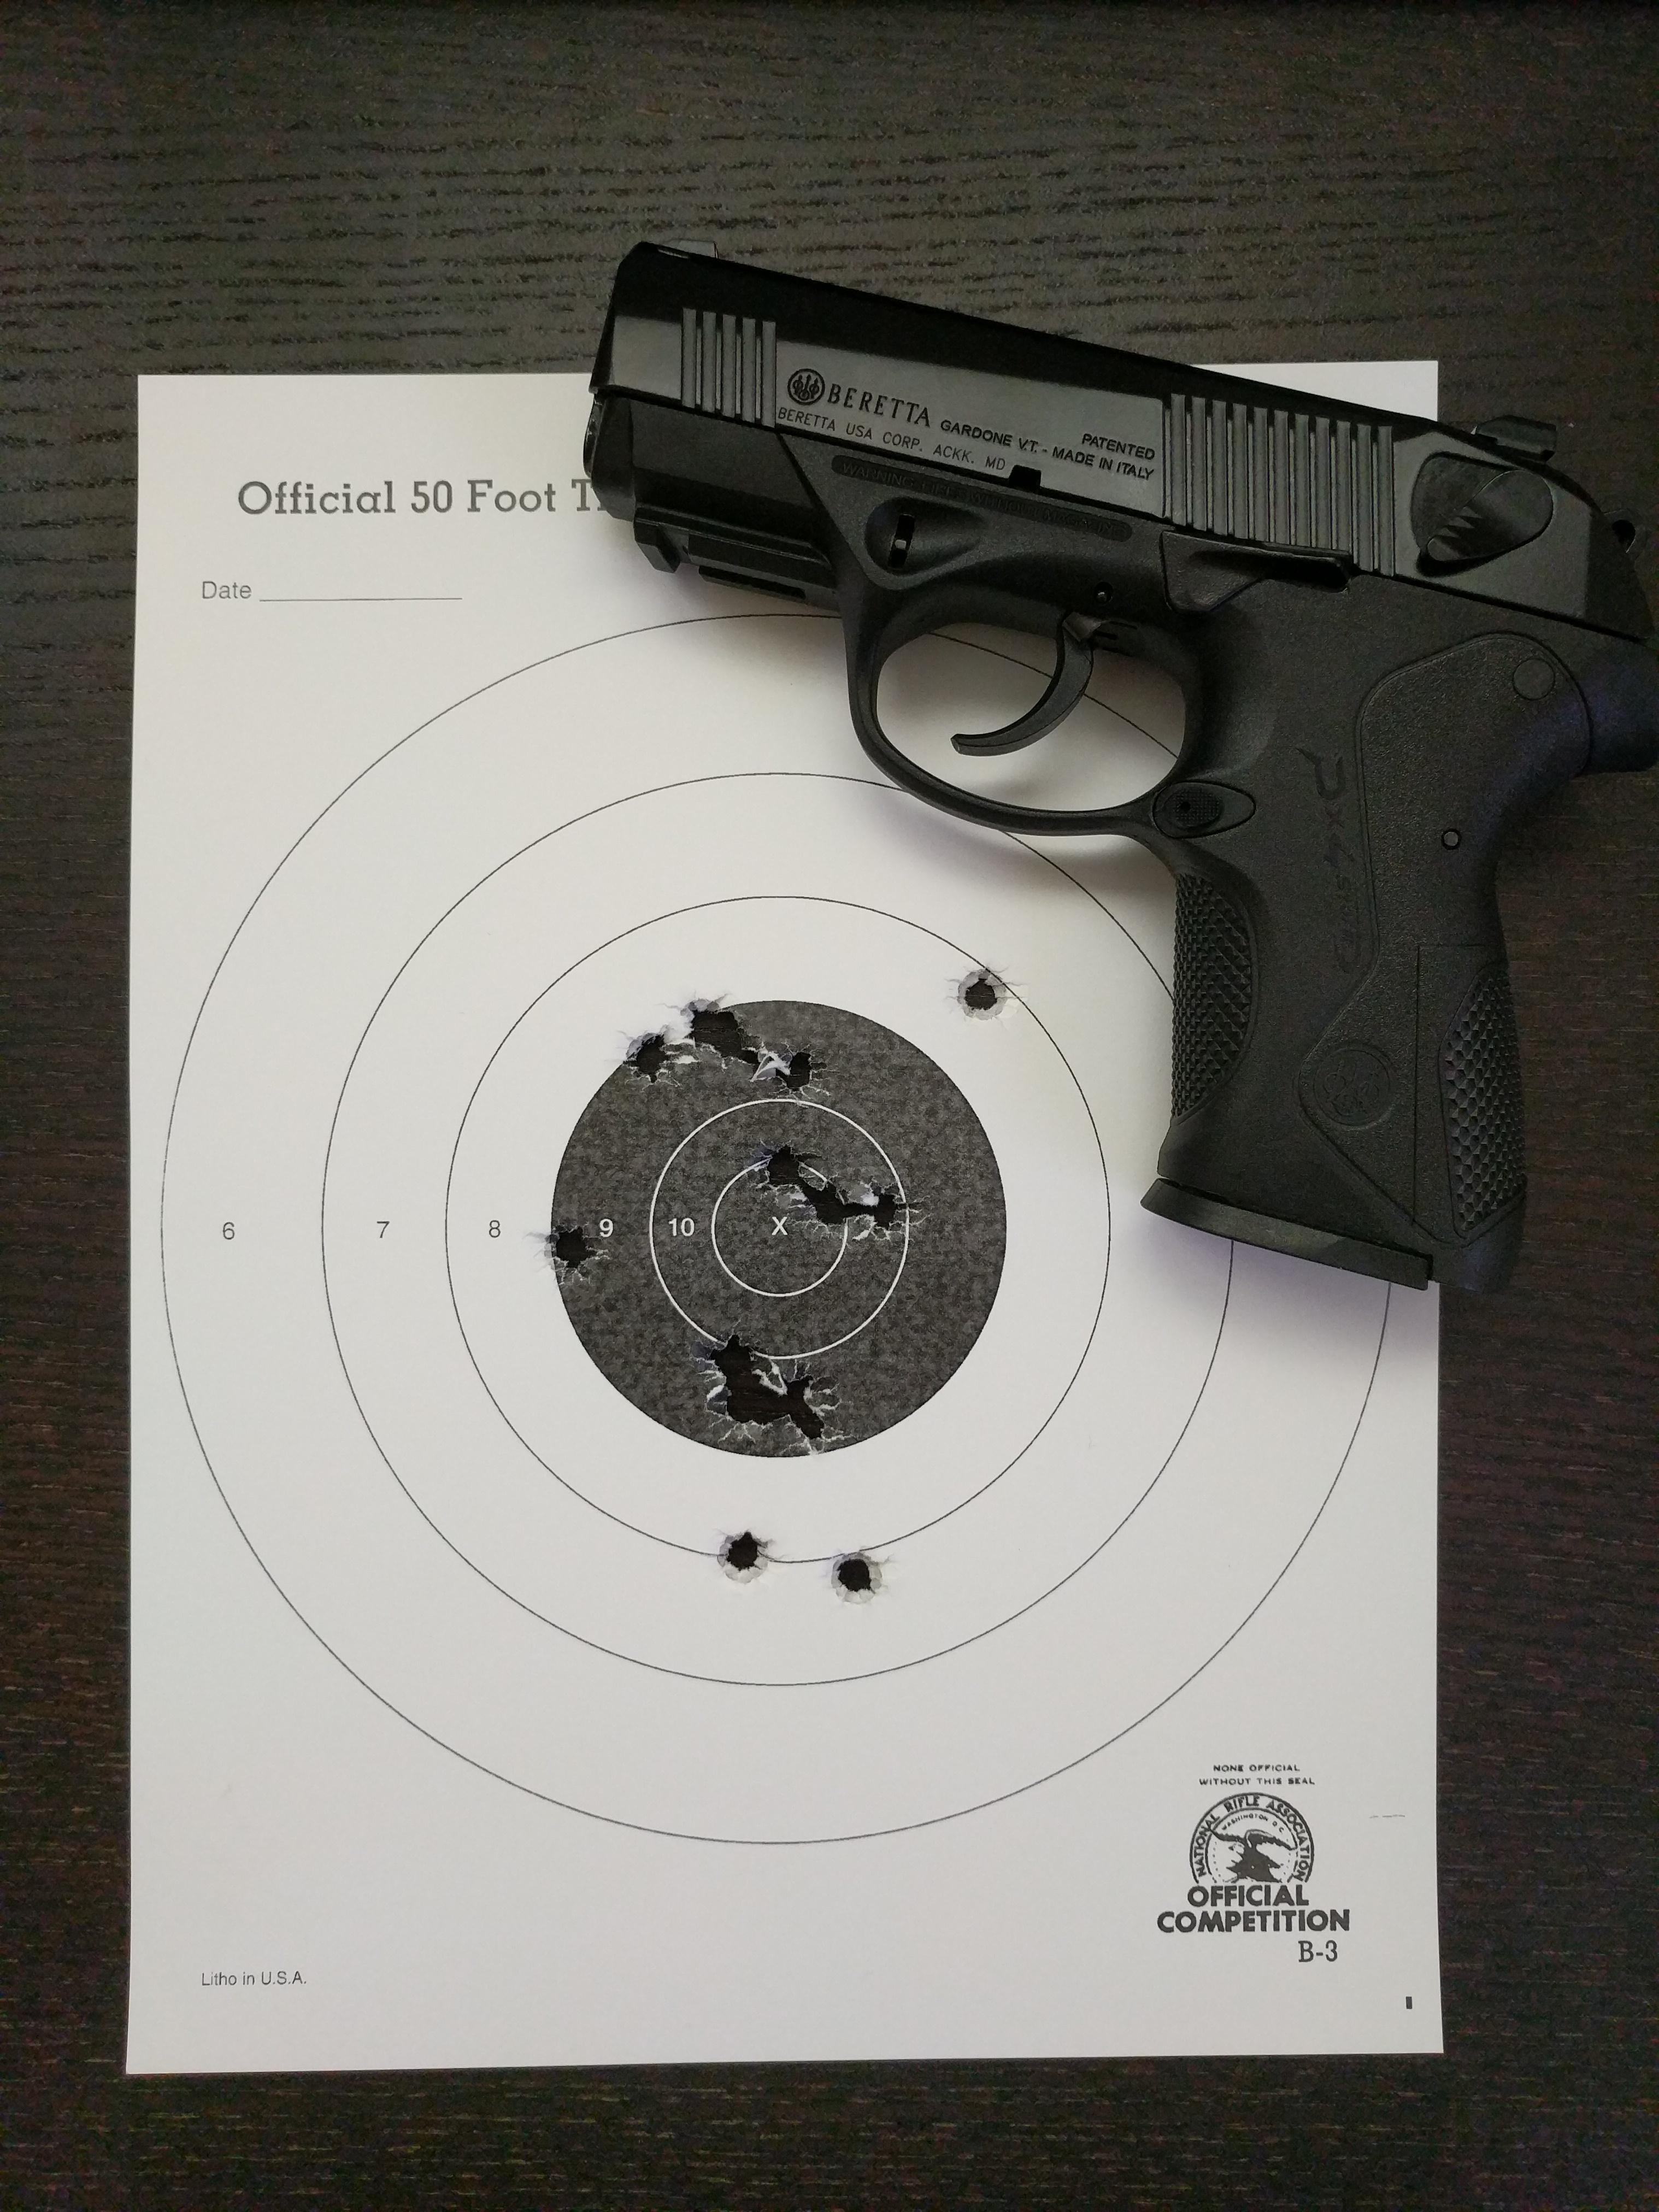 Compact Bad Px4 Storm Compact 15 Rounds At 7 Yards Not Bad For Someone